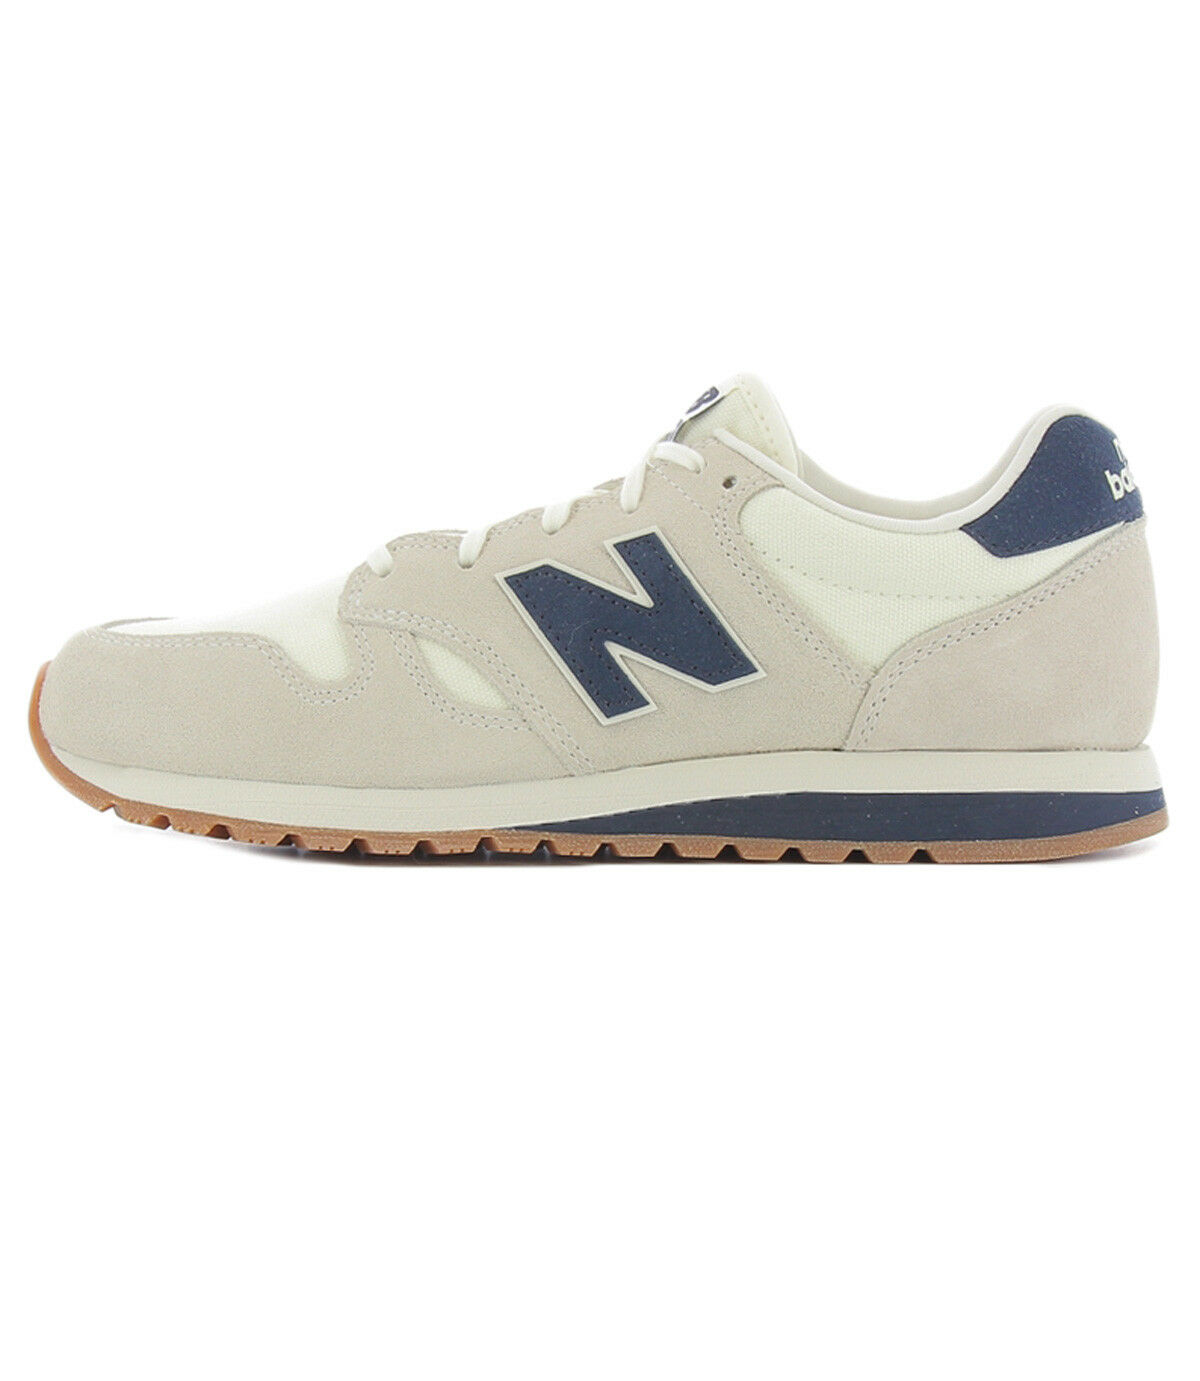 New Balance men's white 520 CC sneaker New Balance U 520CC WHITE